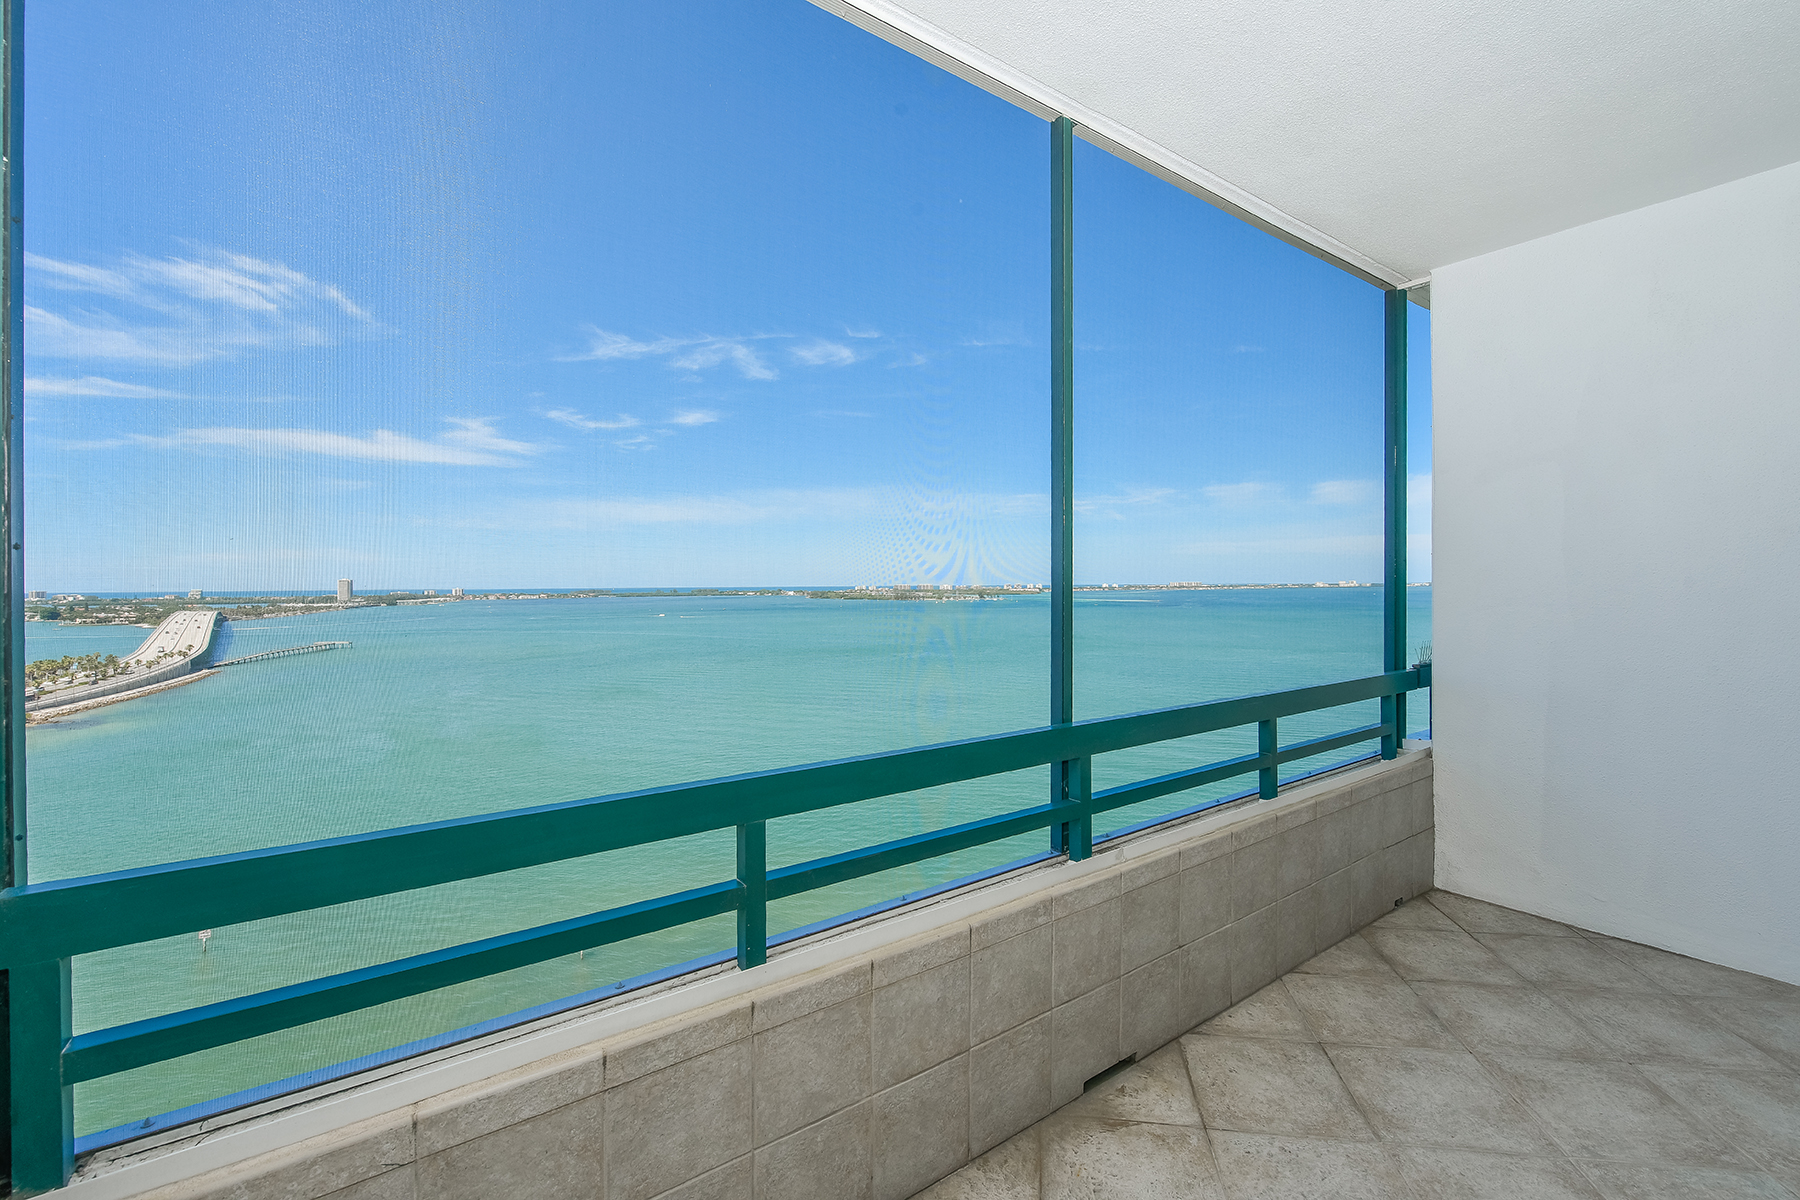 Additional photo for property listing at CONDO ON THE BAY 888  Blvd Of The Arts 1901, 1902,,  Sarasota, Florida 34236 United States